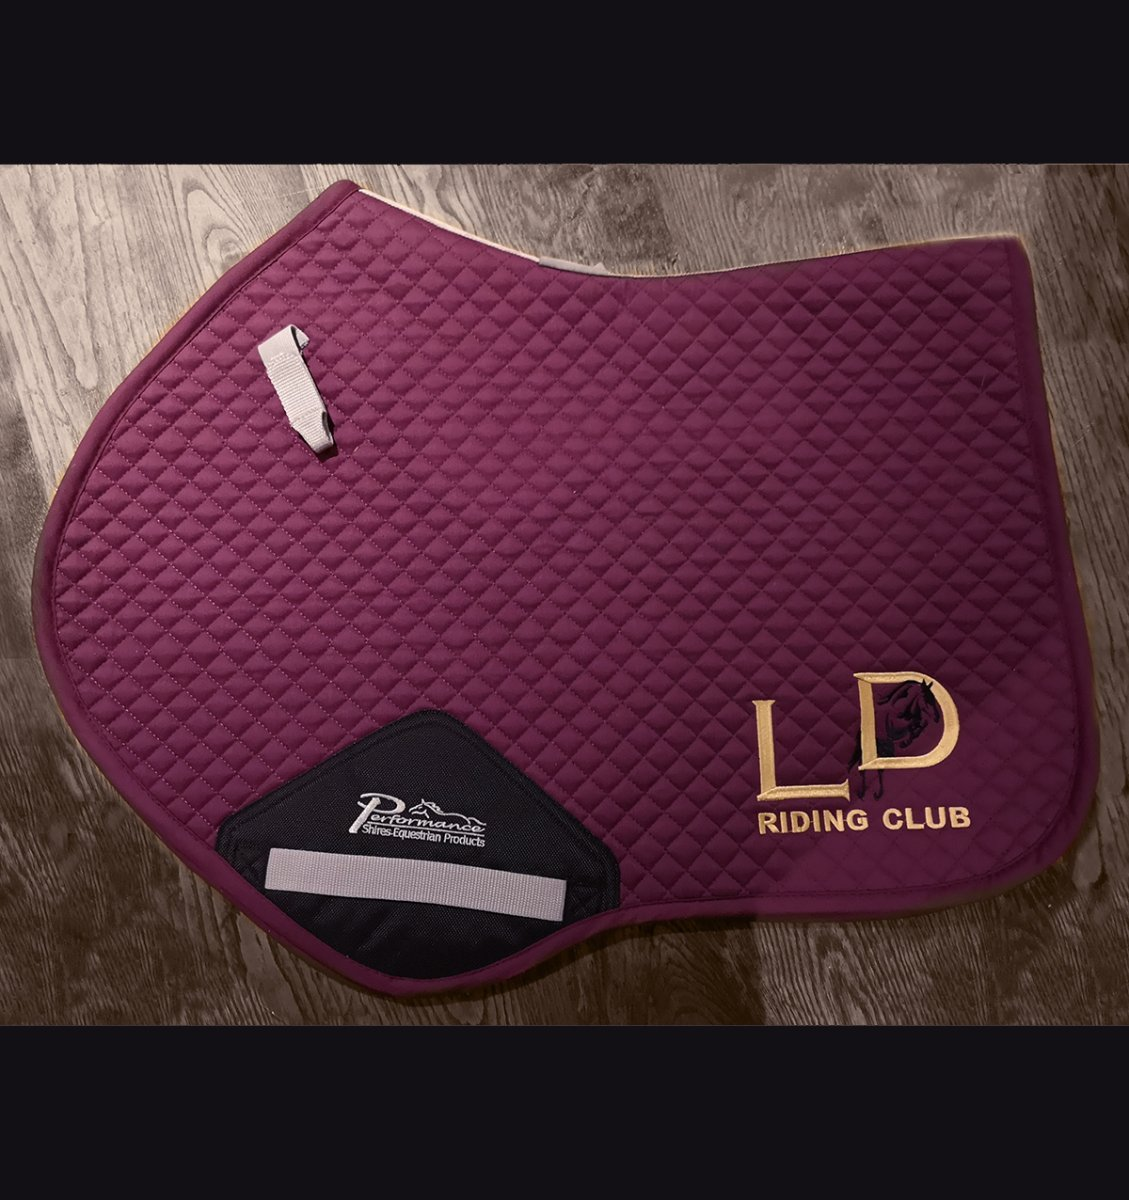 Saddle pad - £30 (emb on one side)